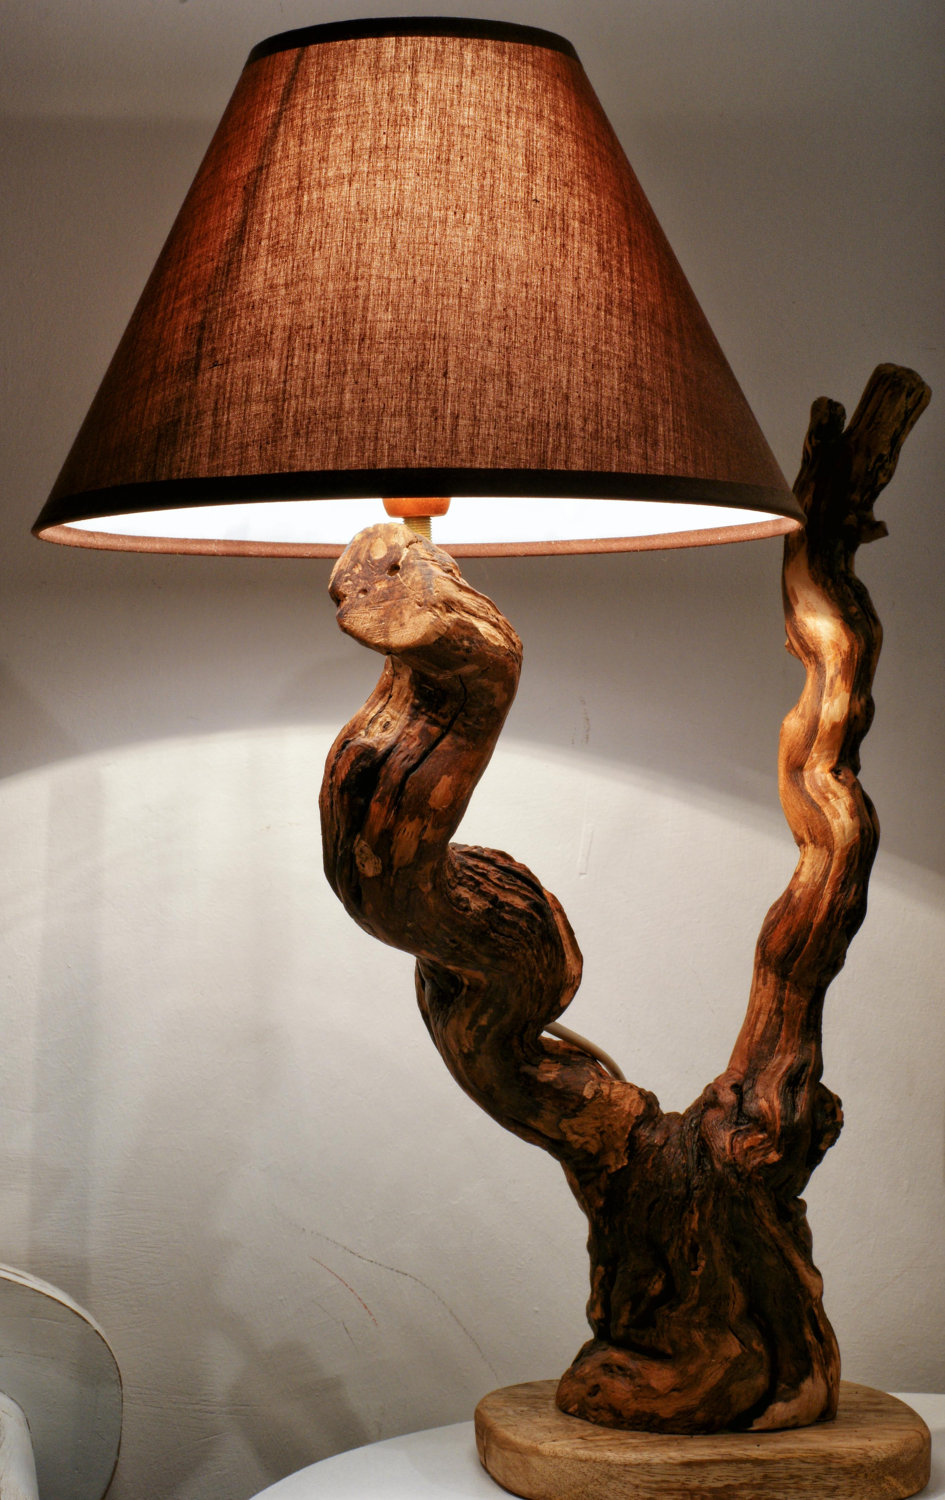 Do You Like To Have A Handmade Wooden Lamp Pouted Online Magazine Latest Design Trends